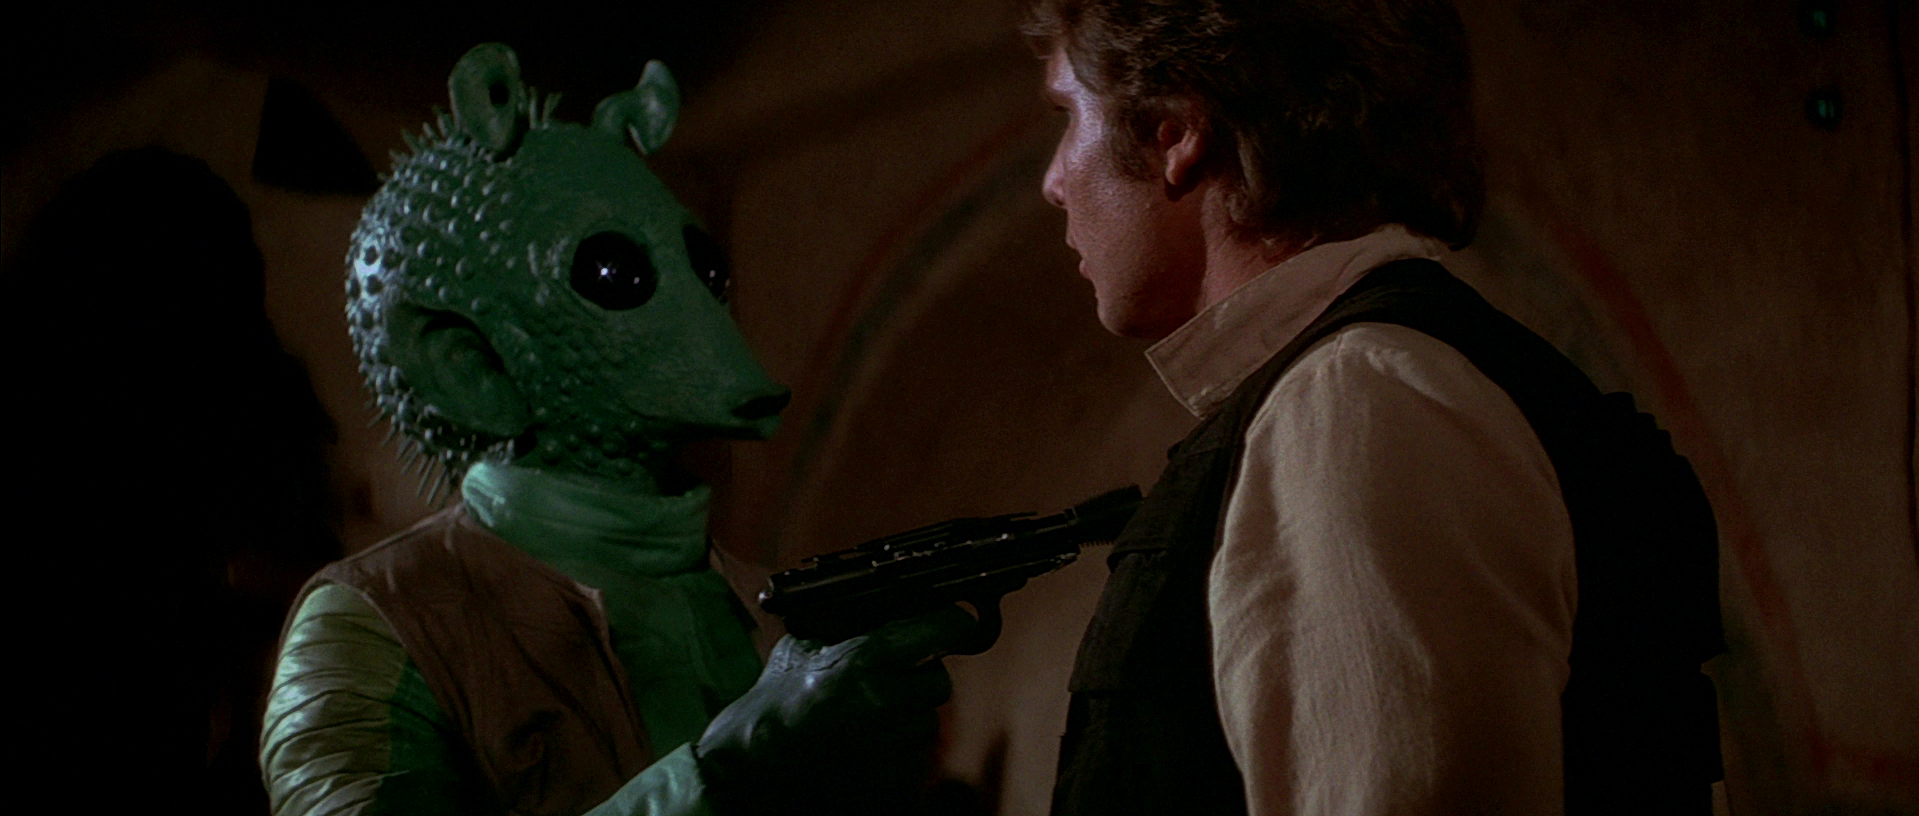 https://vignette.wikia.nocookie.net/ru.starwars/images/0/0d/Greedo_solo.png/revision/latest?cb=20130828122919